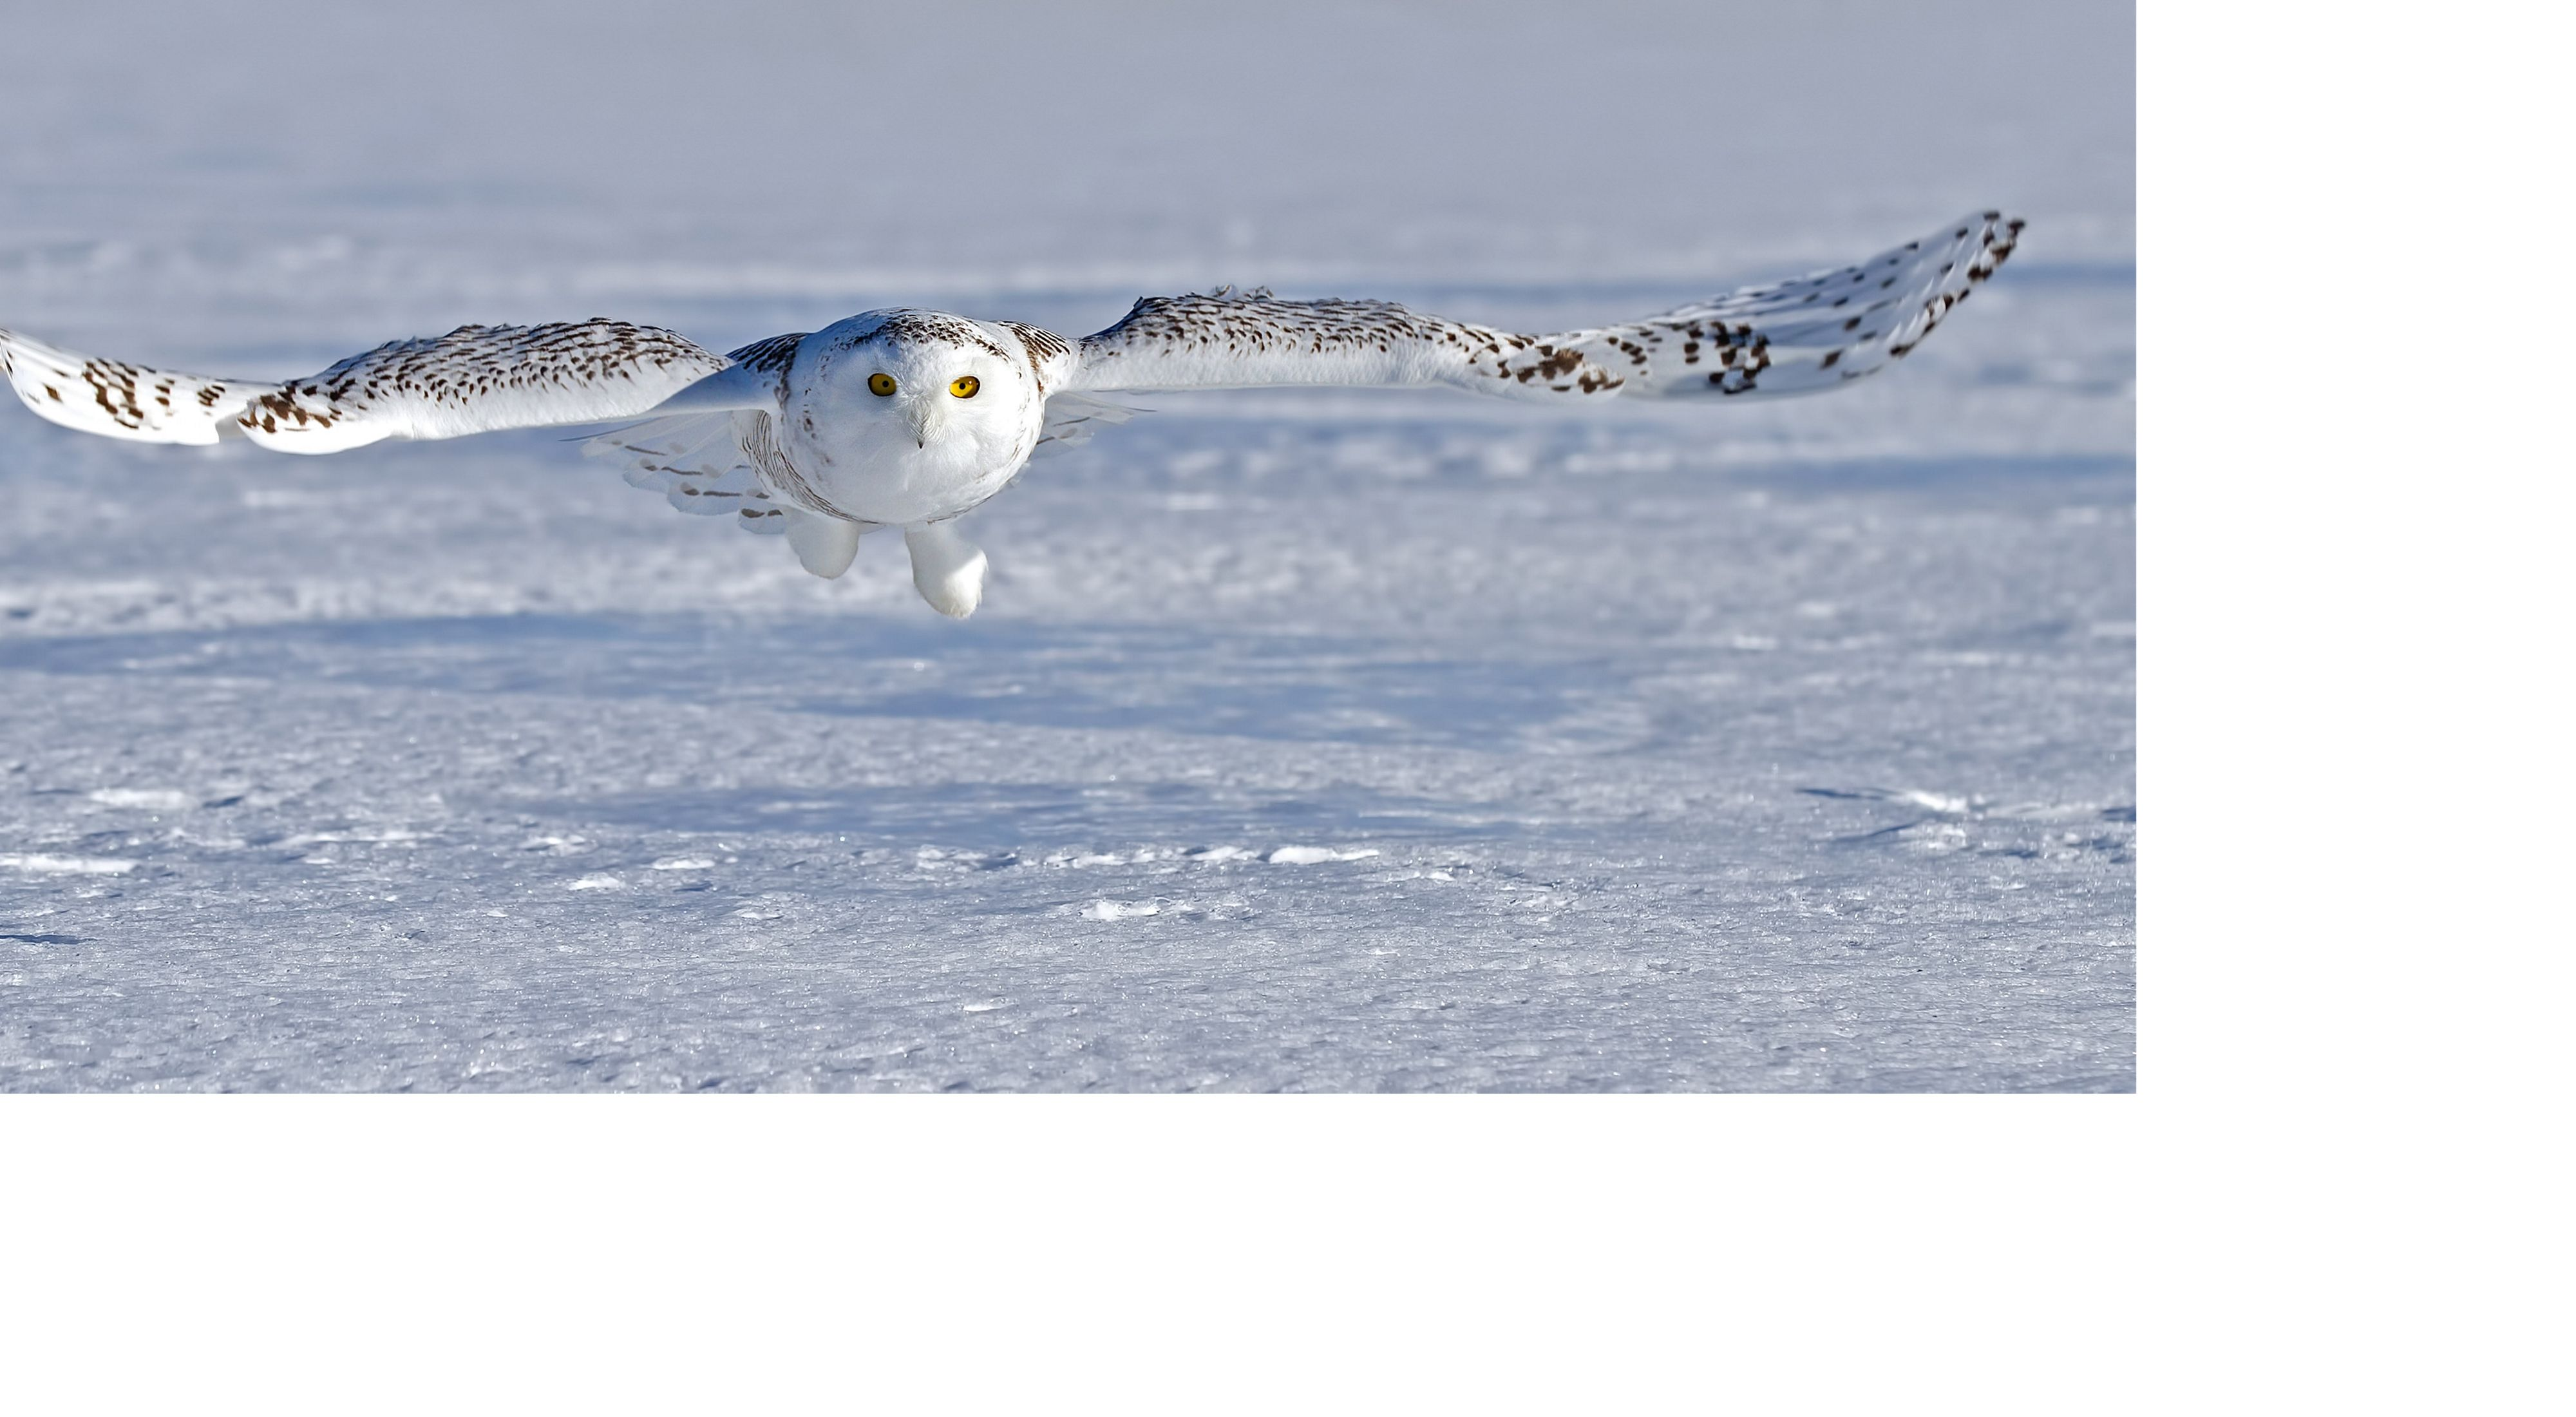 A white snowy owl with some brown stripes on the feathers flying low over a snow-covered landscape.